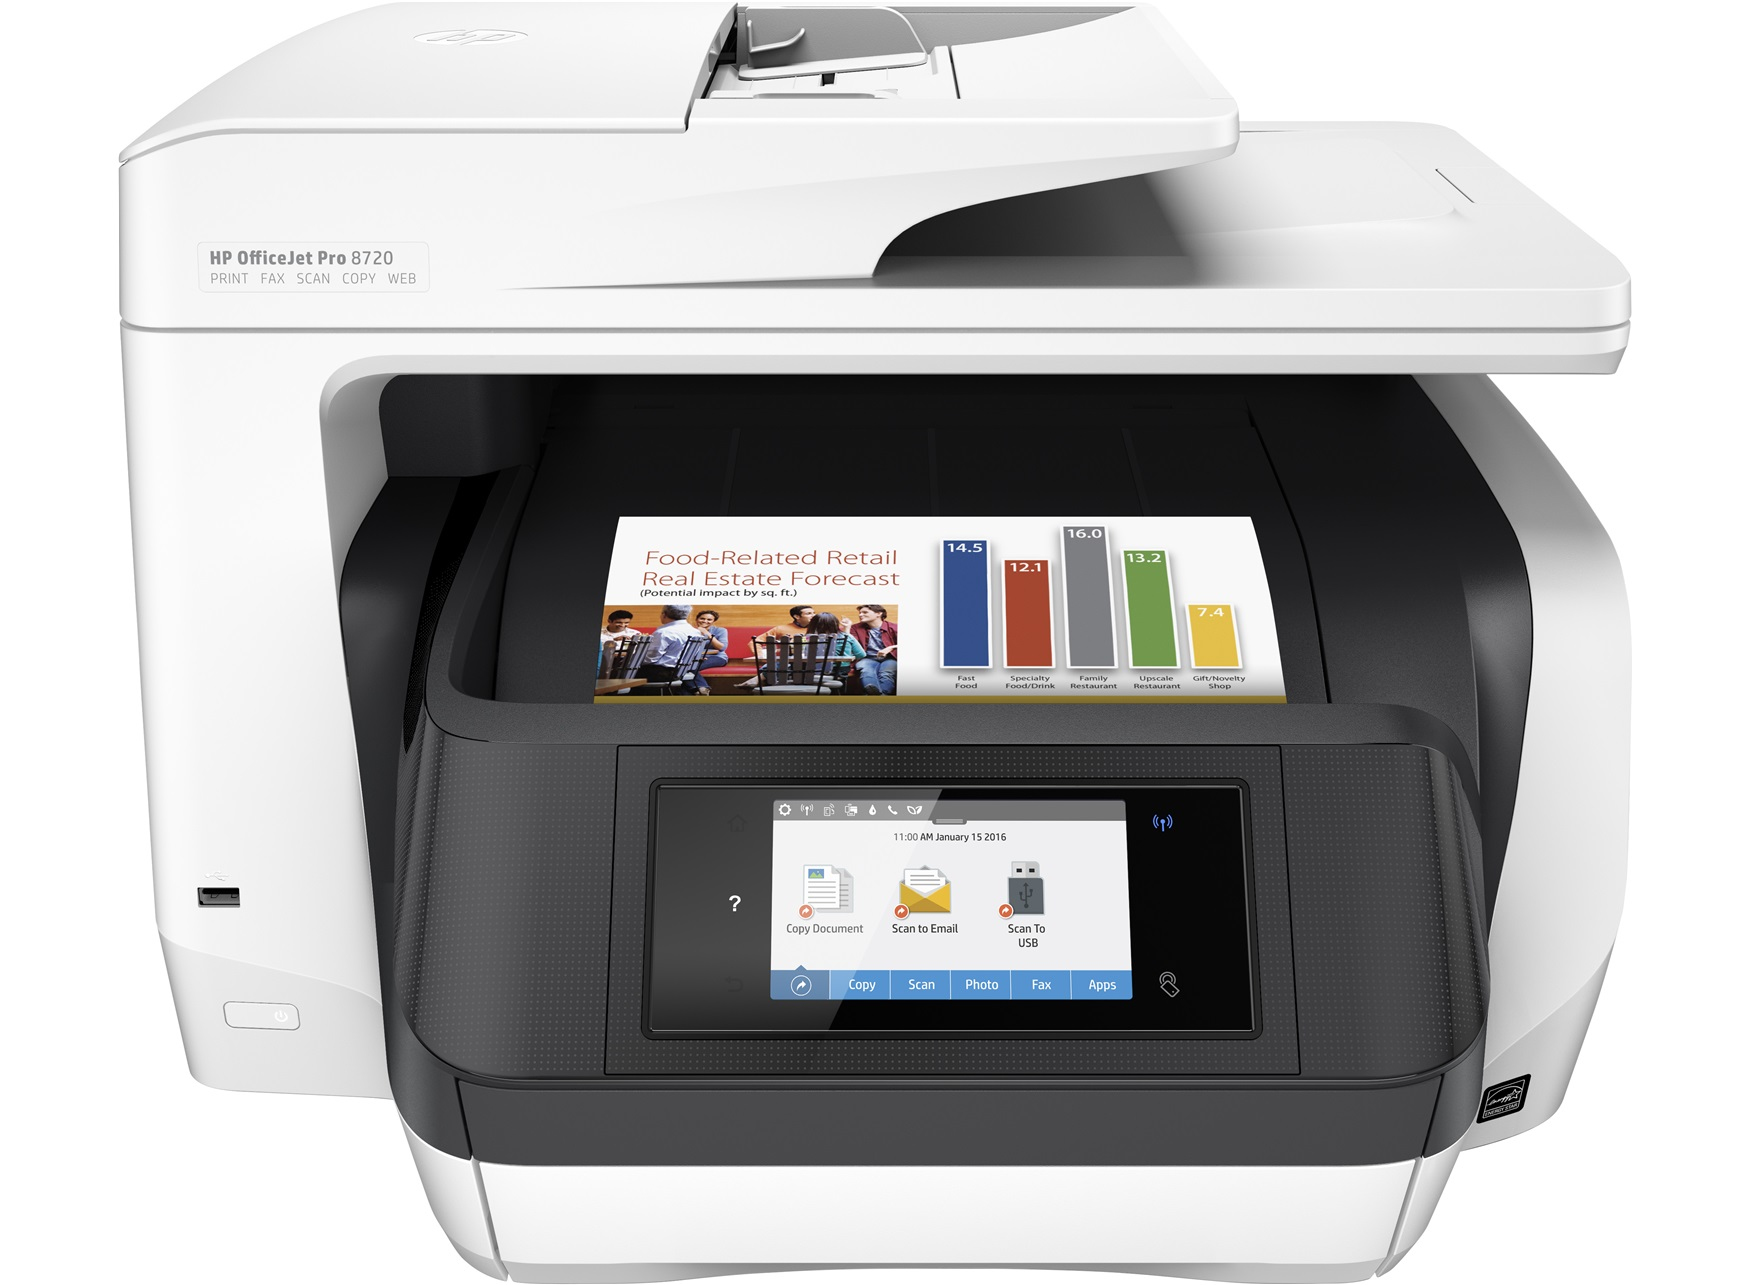 HP OfficeJet Pro 8720 AiO 4800 x 1200DPI Thermal Inkjet A4 24ppm Wi-Fi